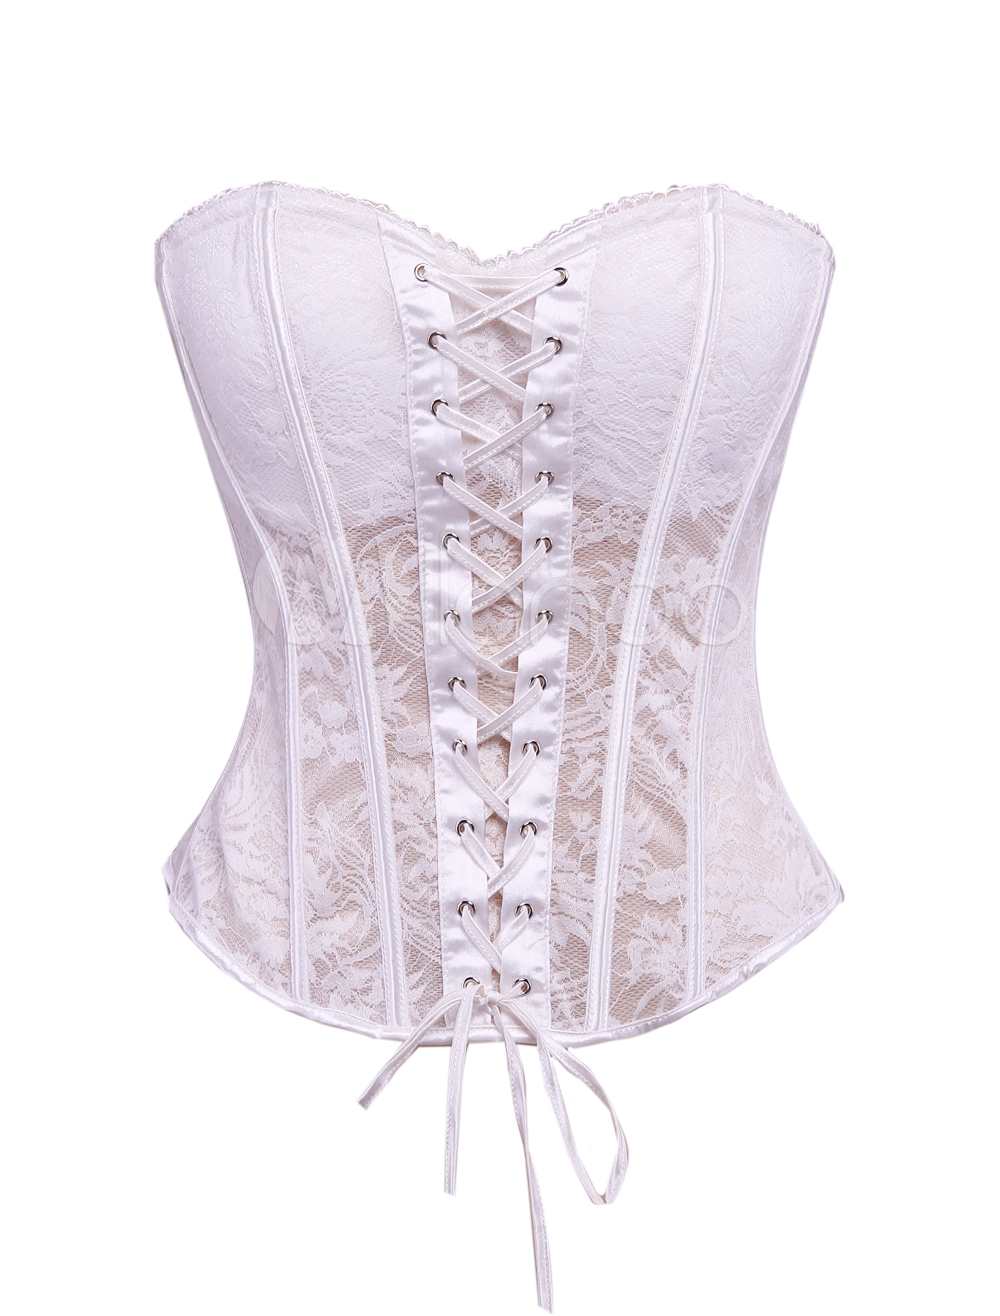 White lace women 39 s overbust corset for wedding dress for White corset wedding dress